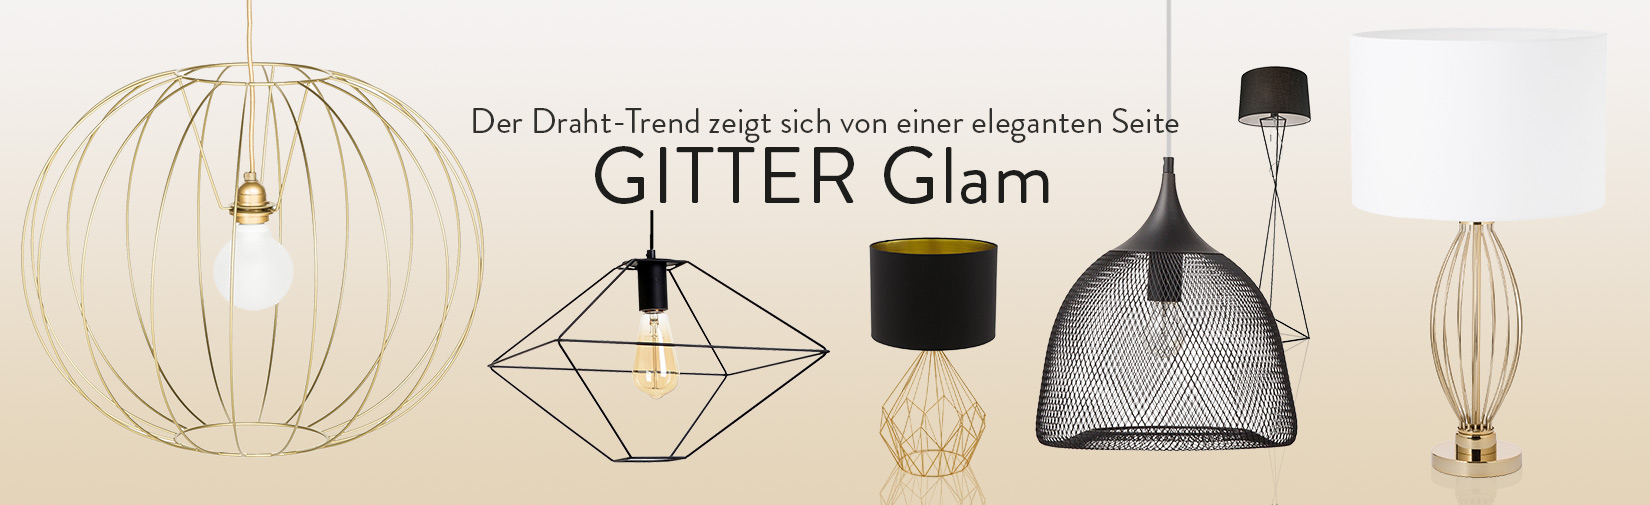 LP_Gitter-Glam_Desktop